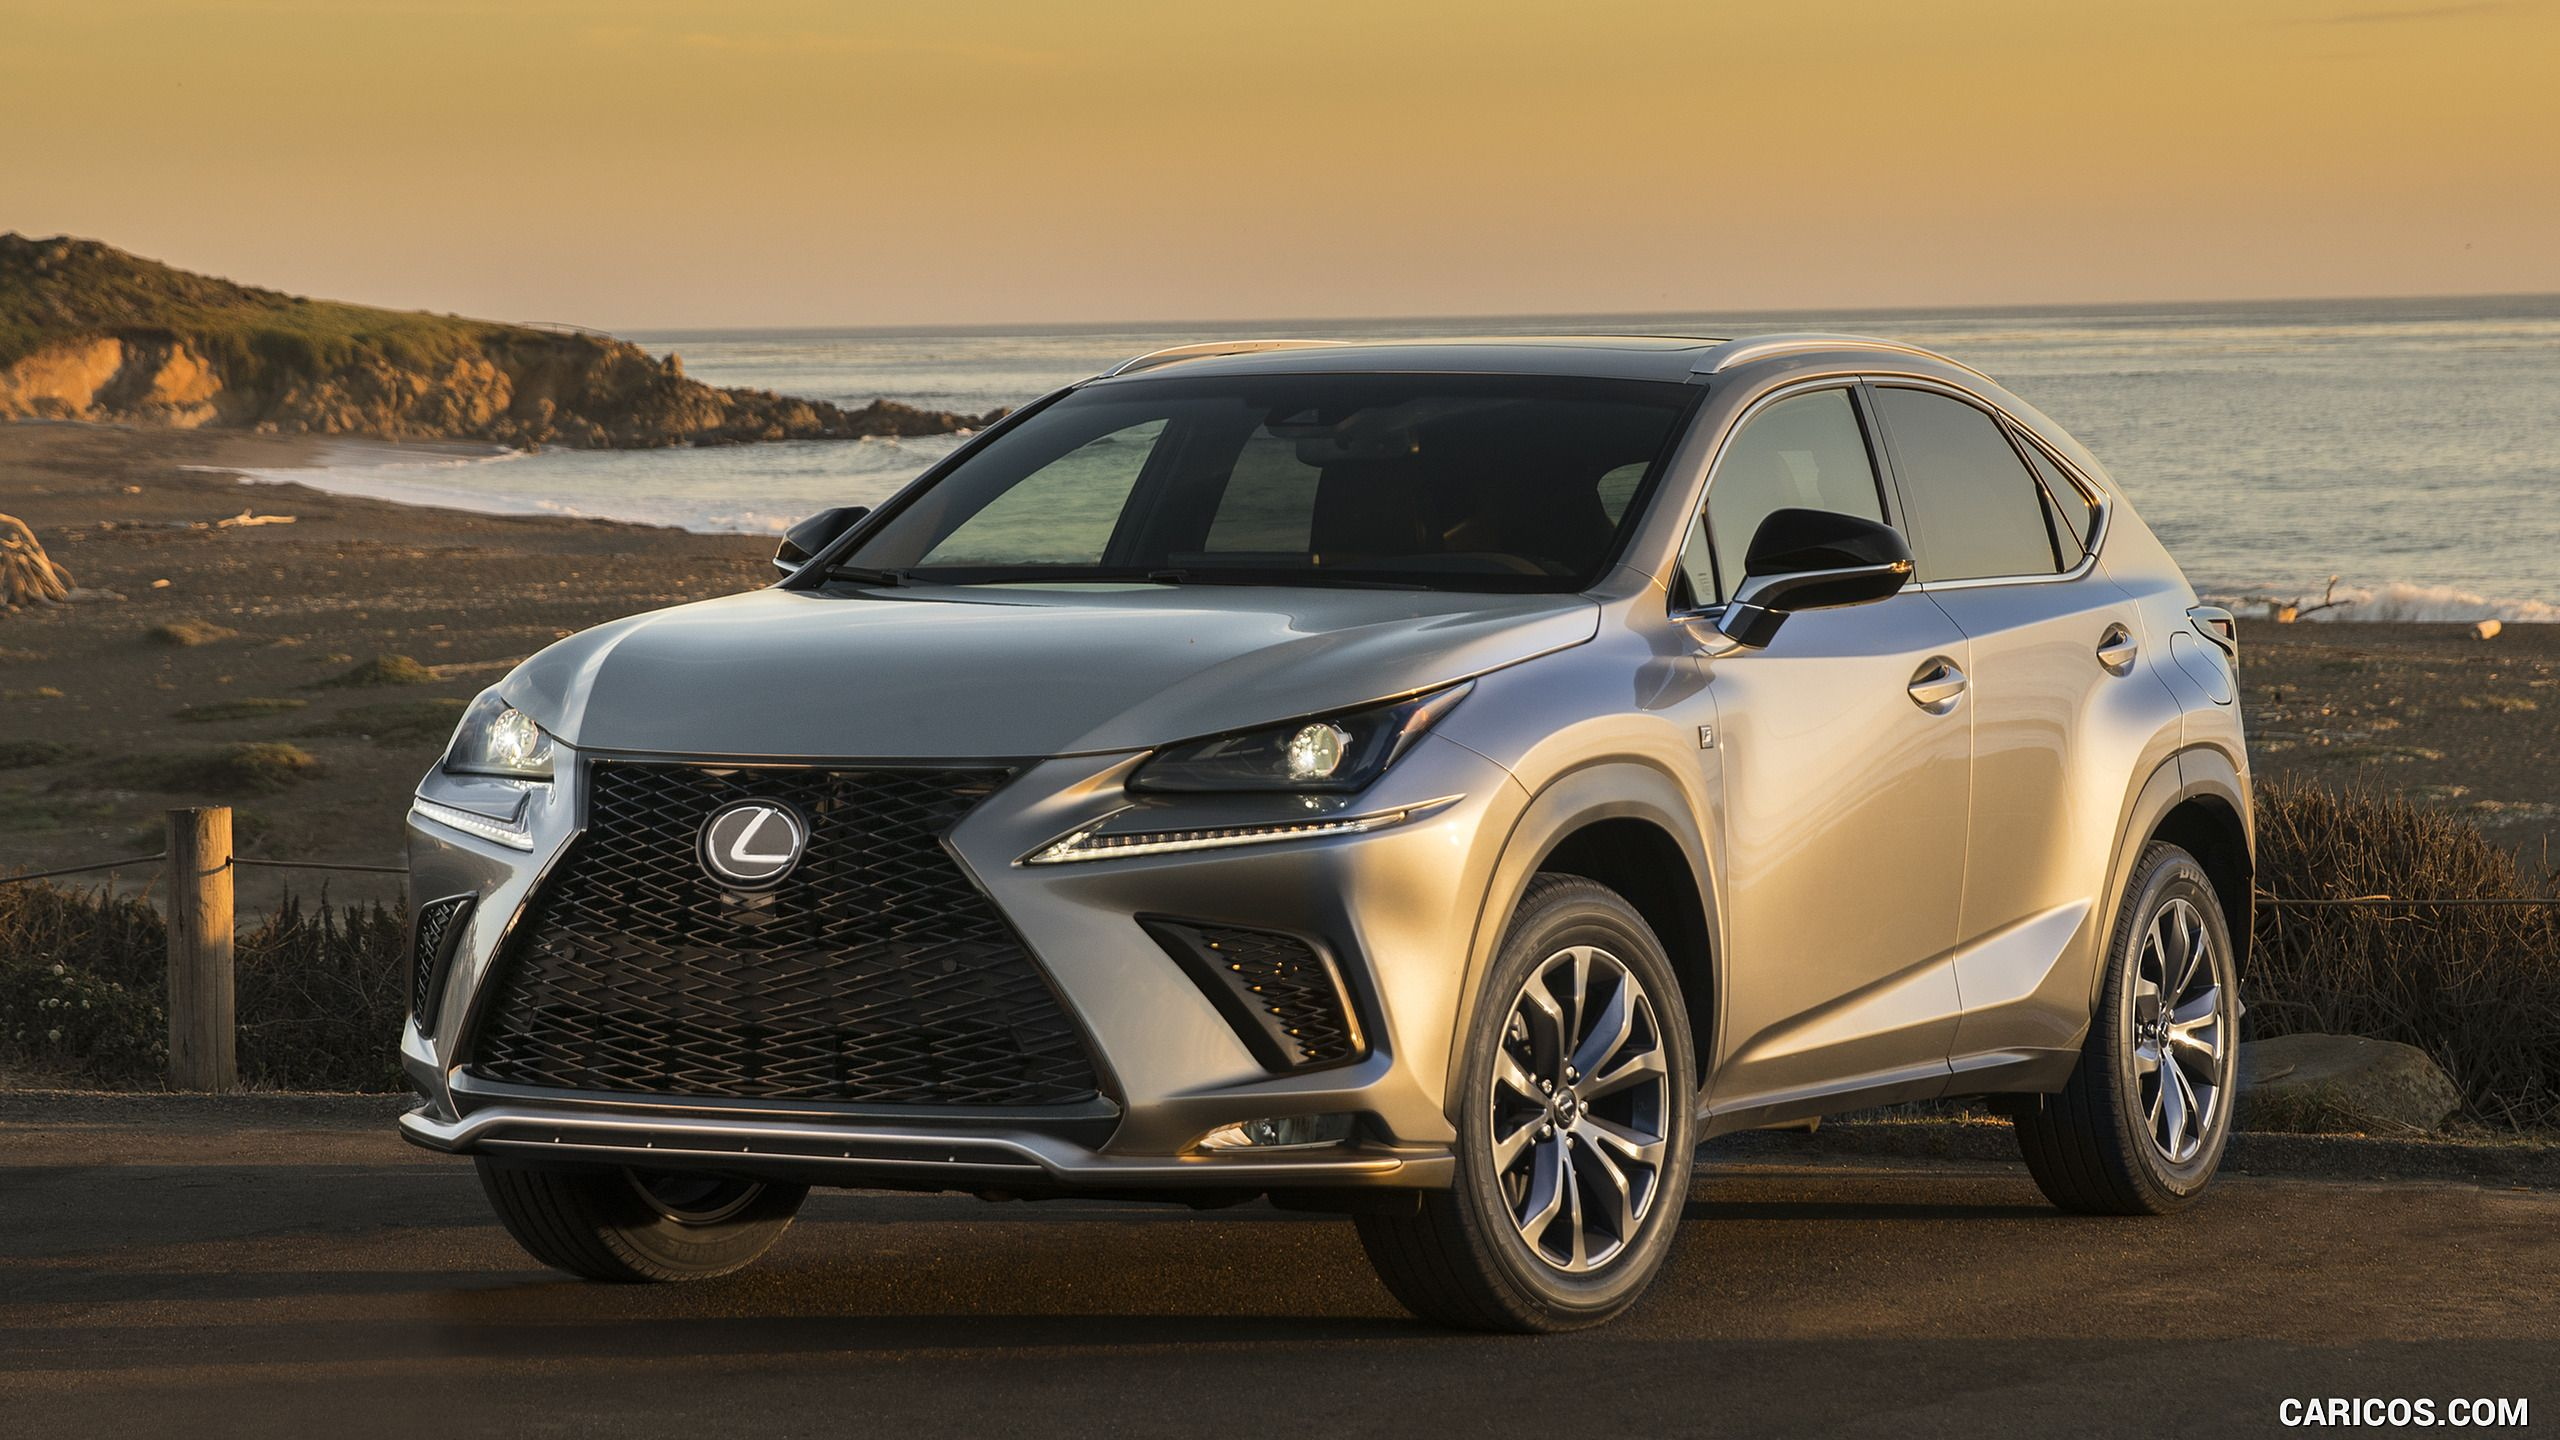 2018 Lexus NX 300F Sport Lexus, Cars, Car buying